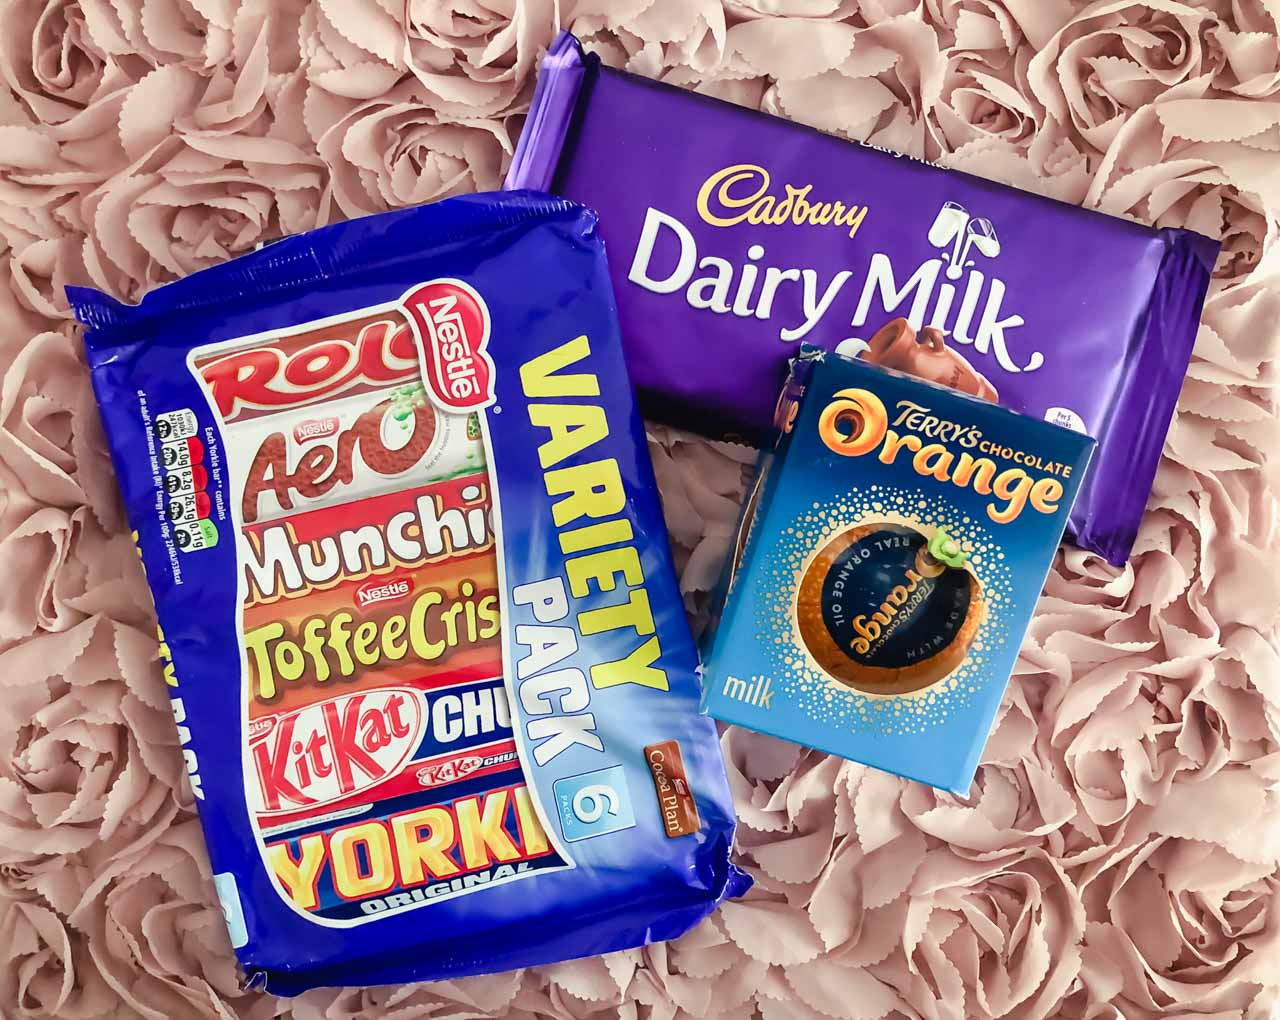 A variety pack of Nestle chocolate bars, a bar of Cadbury Dairy Milk chocolate, and a Terry's Chocolate Orange against a pink background